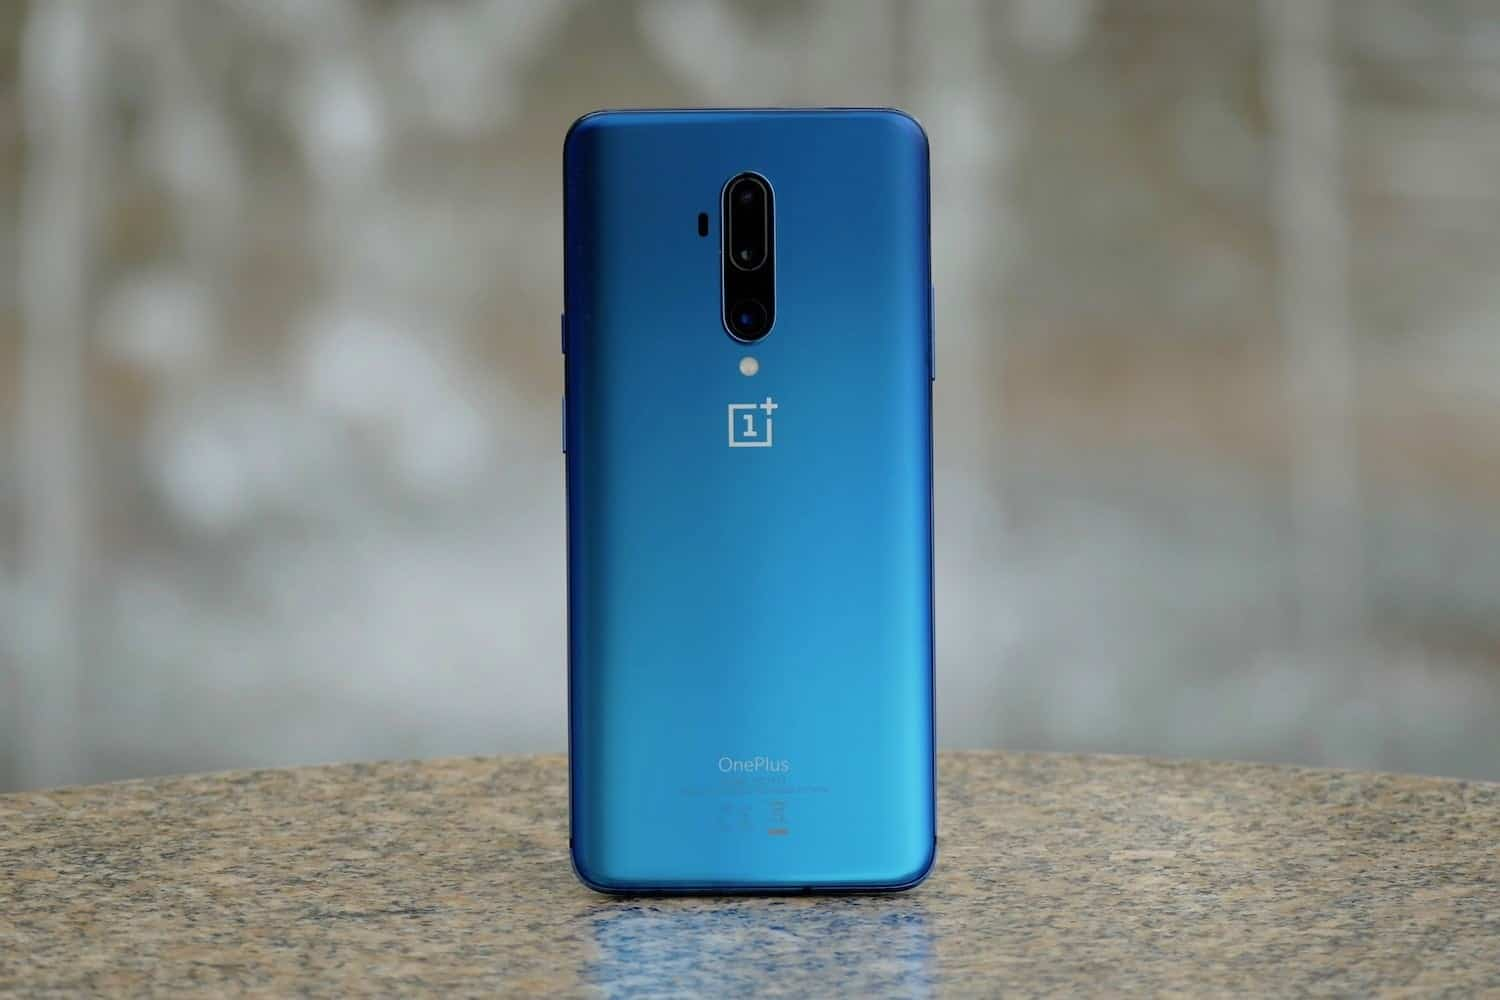 Oxygen OS 10.3.0 update for OnePlus 6, 6T starts rolling out